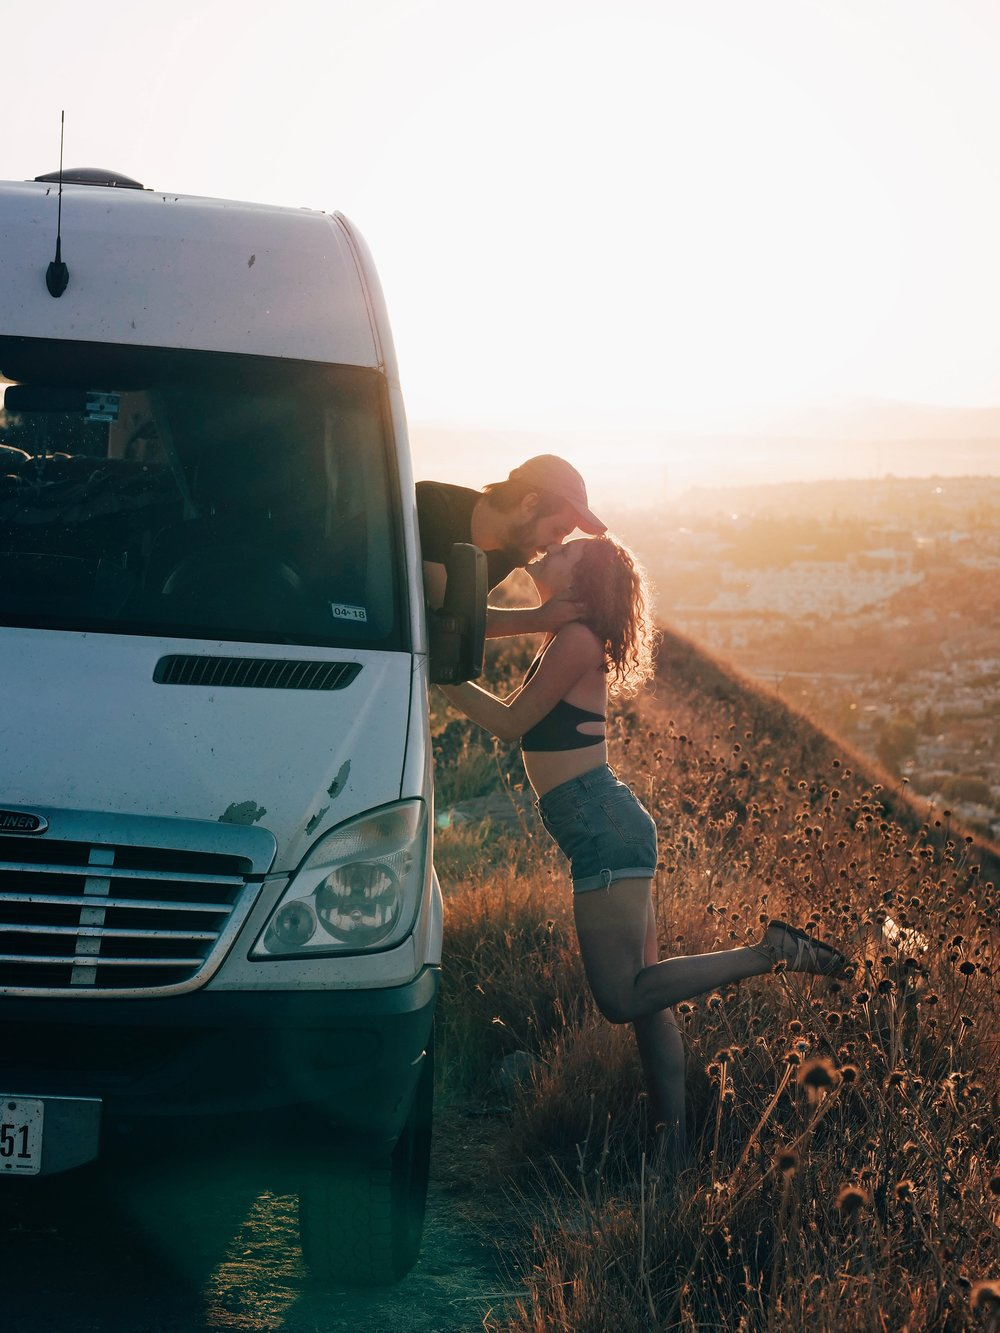 Want to know what living in a van is like? - In 2017, we quit our jobs, made a list of our dream North American destinations, and moved into a van. Are you curious about what converting a van and living in one is like? You might like these videos on our YouTube channel:Watch ➝